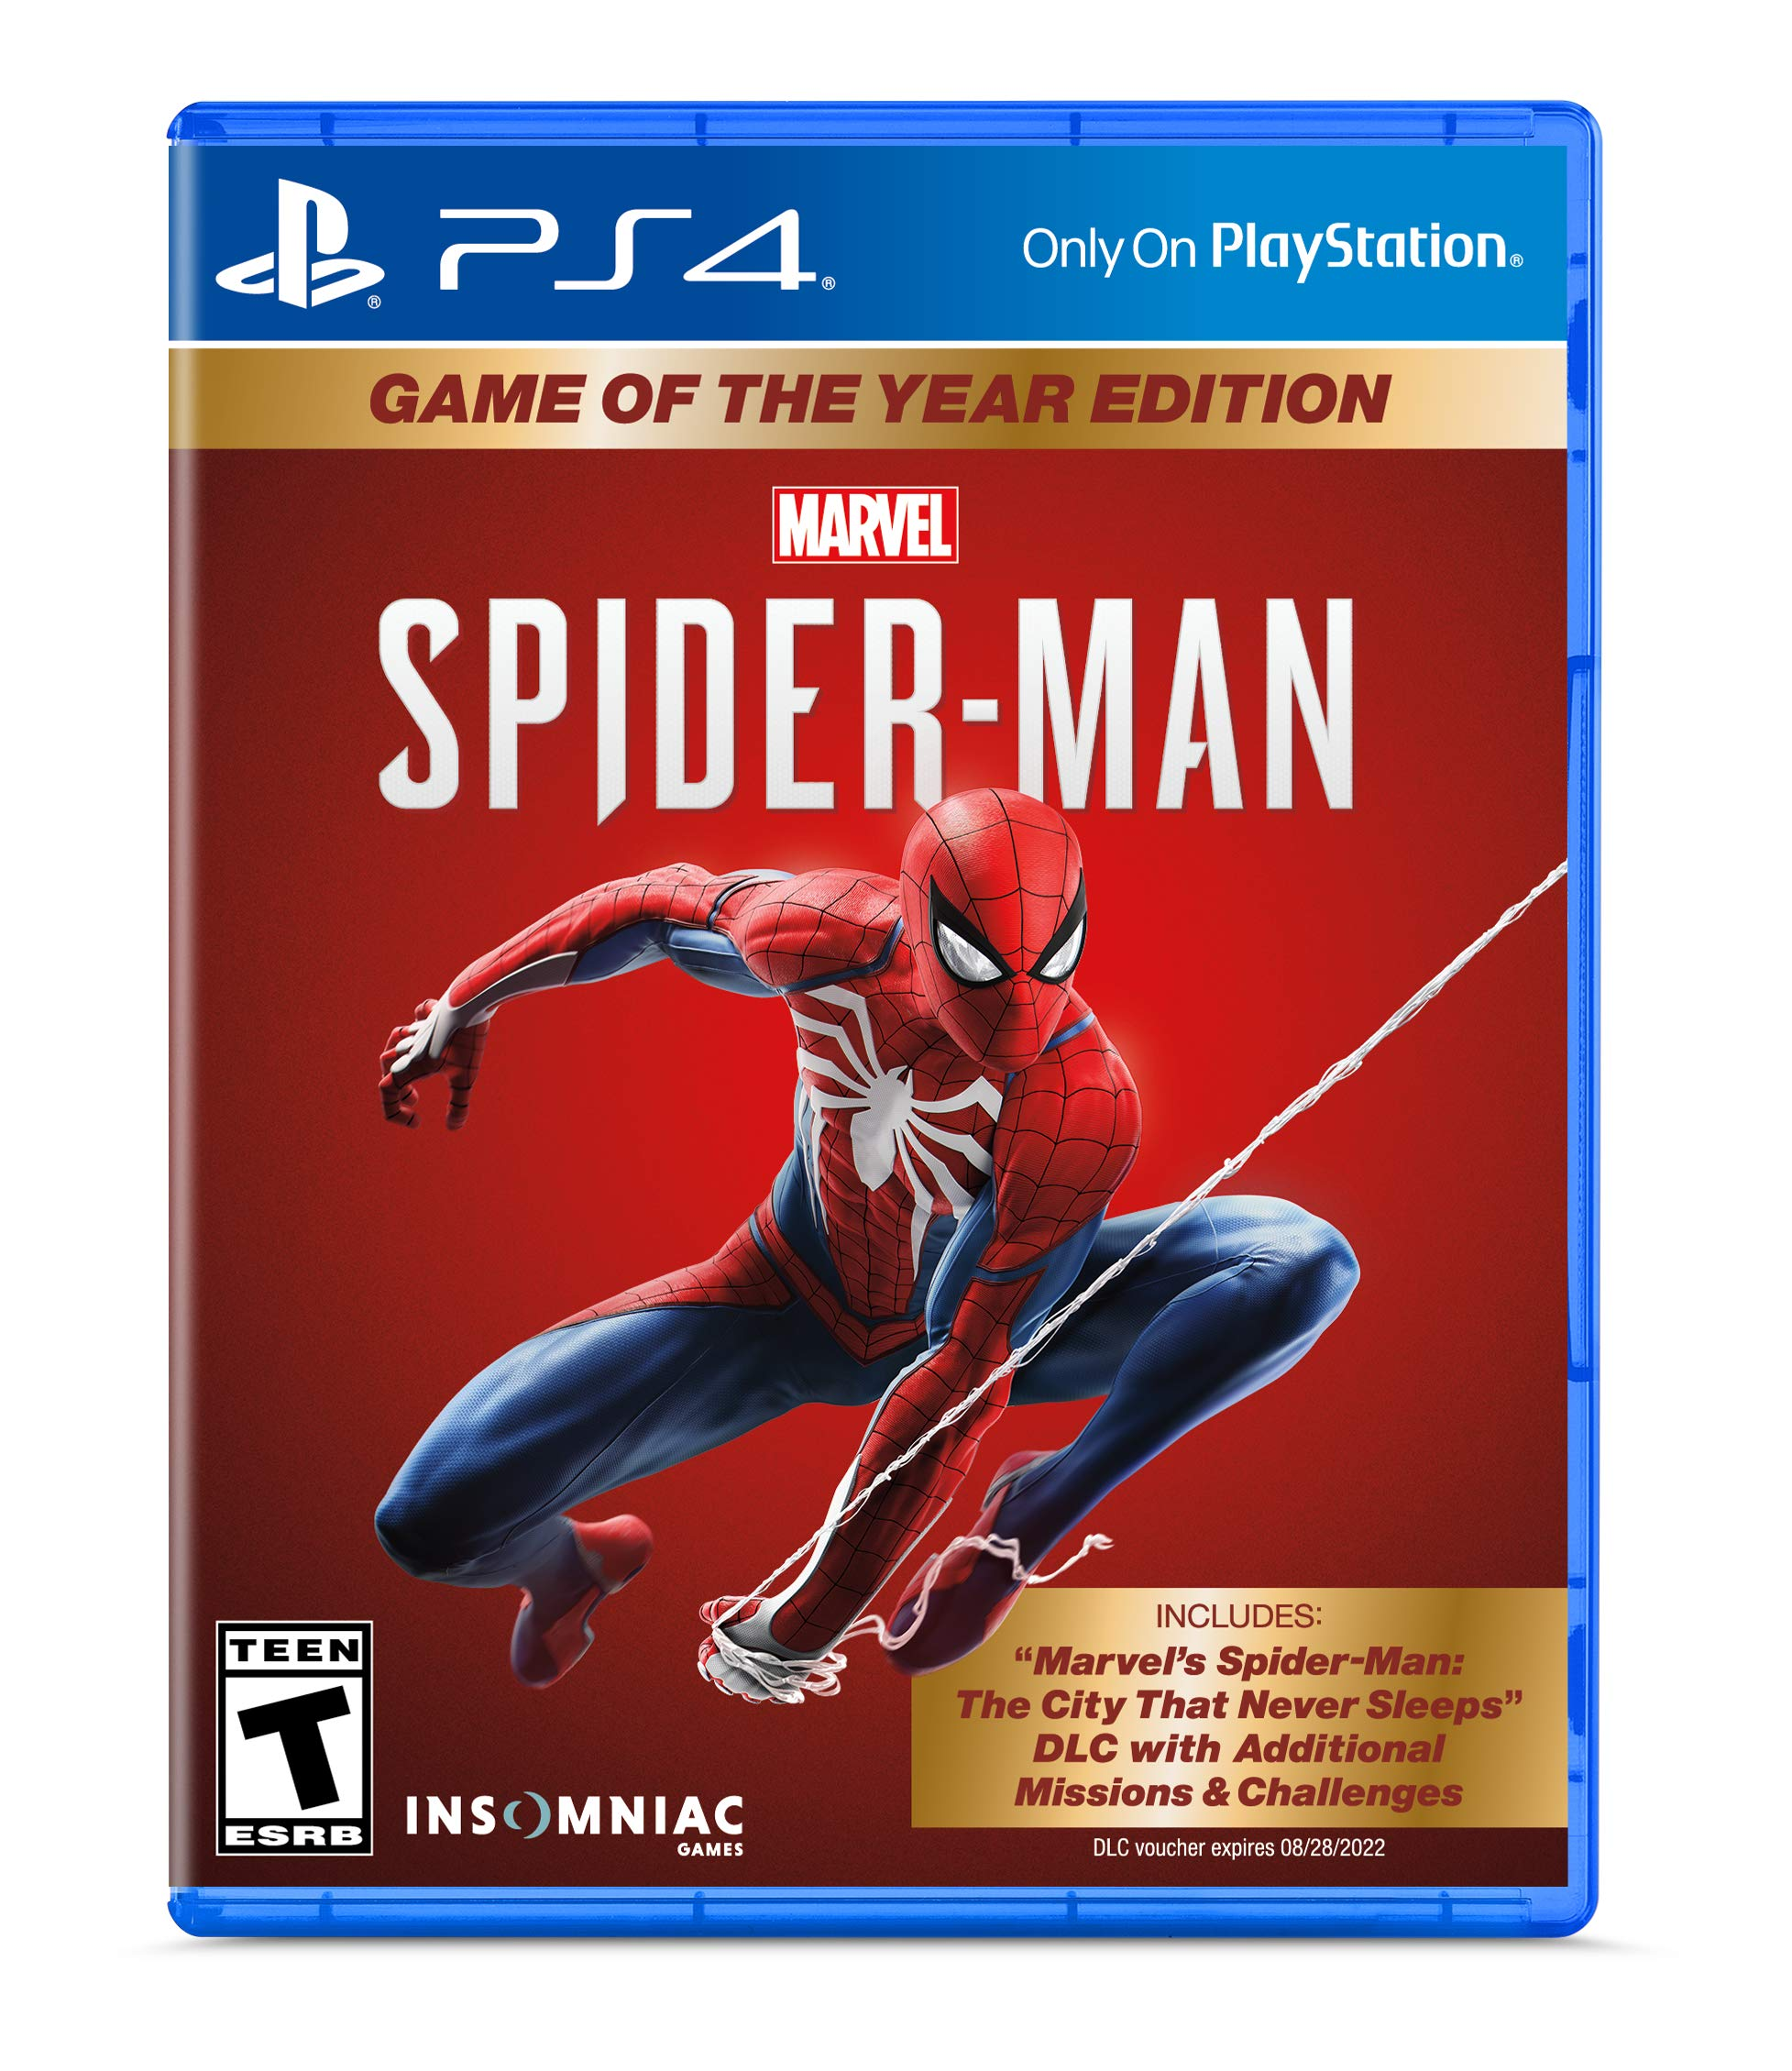 Marvel's Spider-Man: Game of The Year Edition - PlayStation 4                NBA 2K21 - PlayStation 4                Super Mario 3D World + Bowser's Fury - Nintendo Switch                Red Dead Redemption 2 (PS4)                NBA 2K19 - PlayStation 4